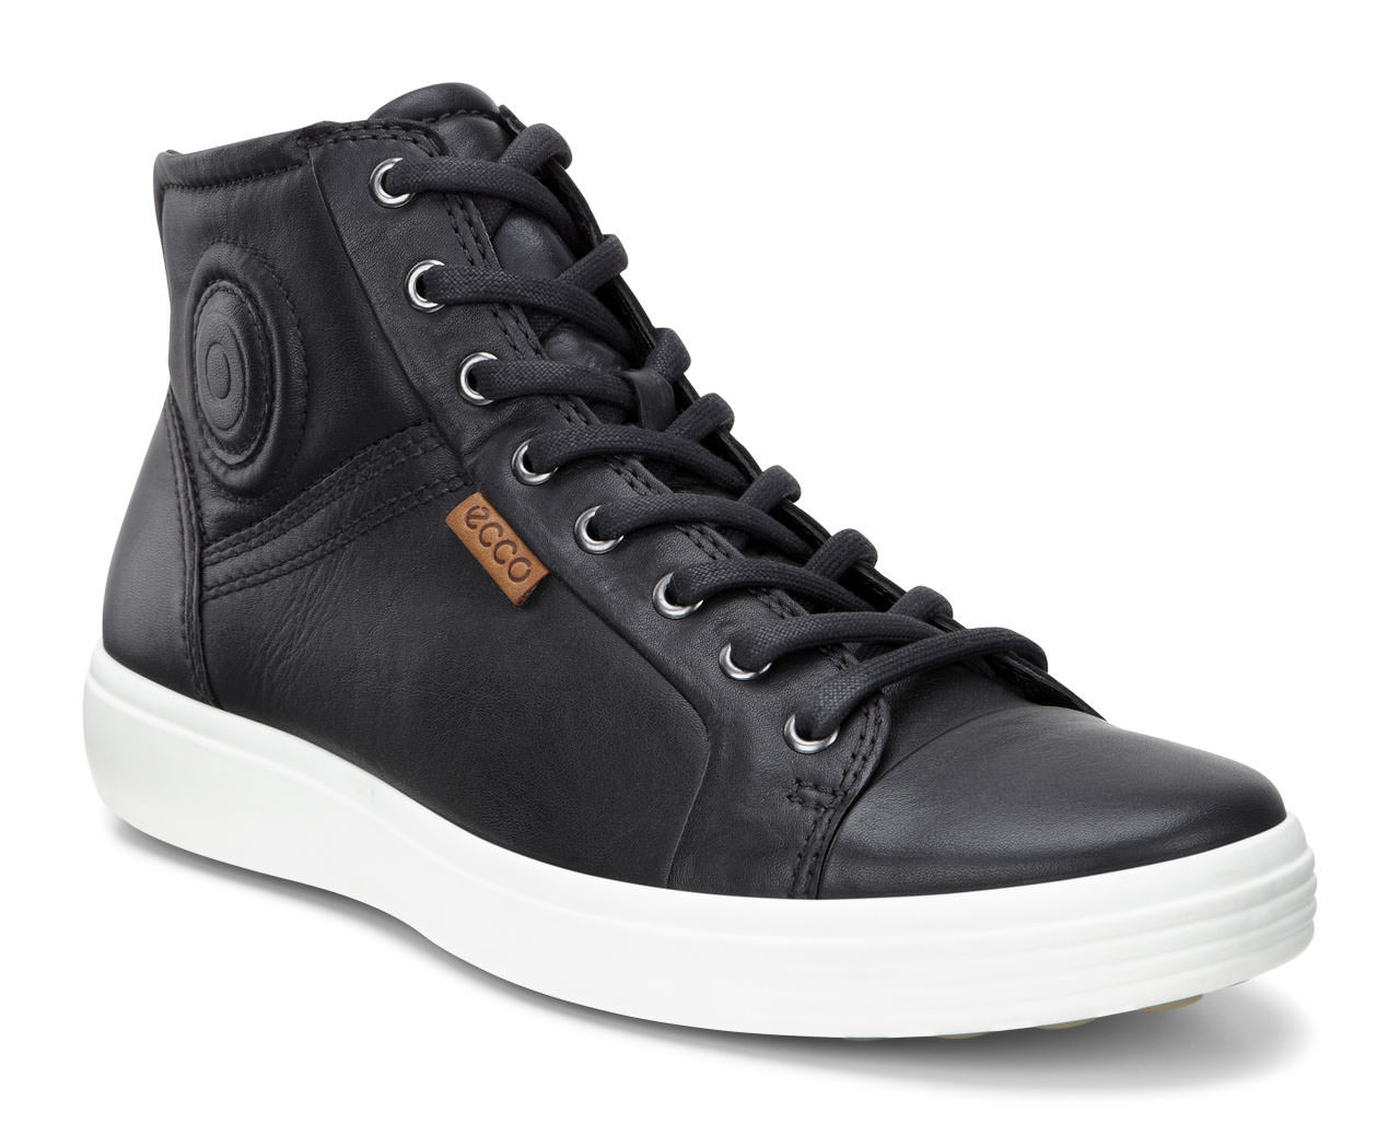 ECCO Mens Soft 7 High Top